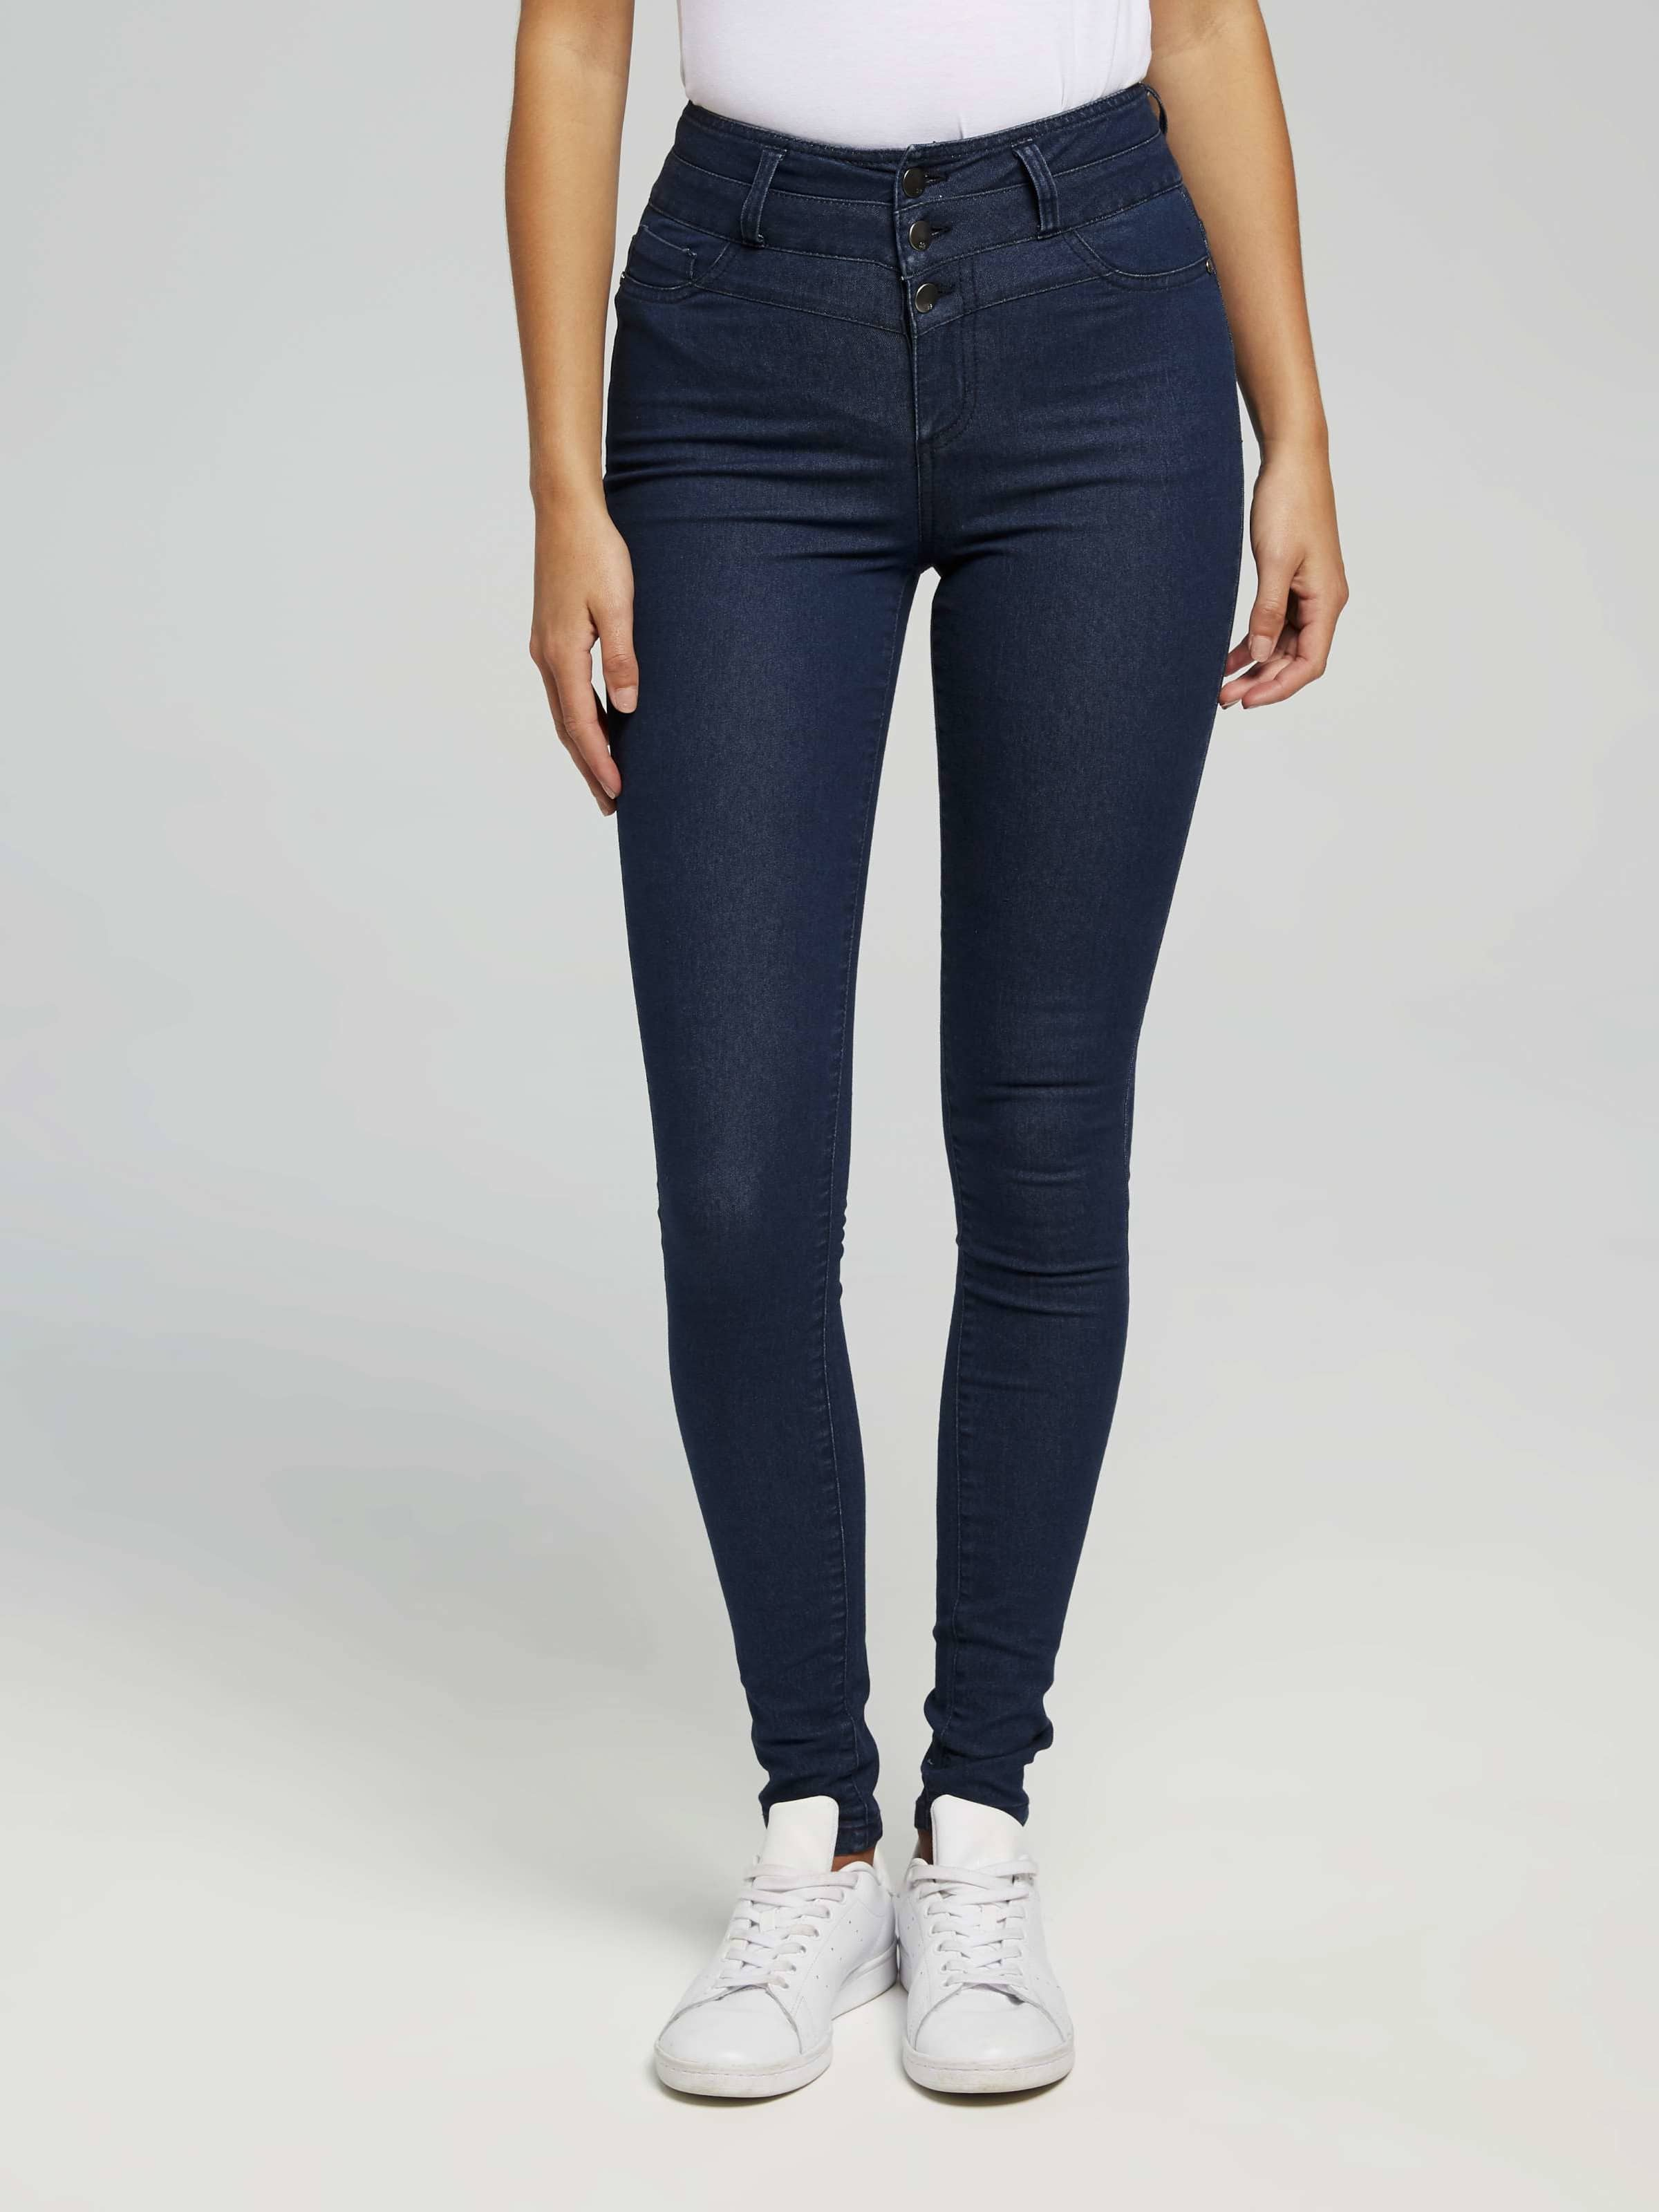 f5940a46d45d3 Image for 3 Button High Rise Jeans from Jay Jays ...